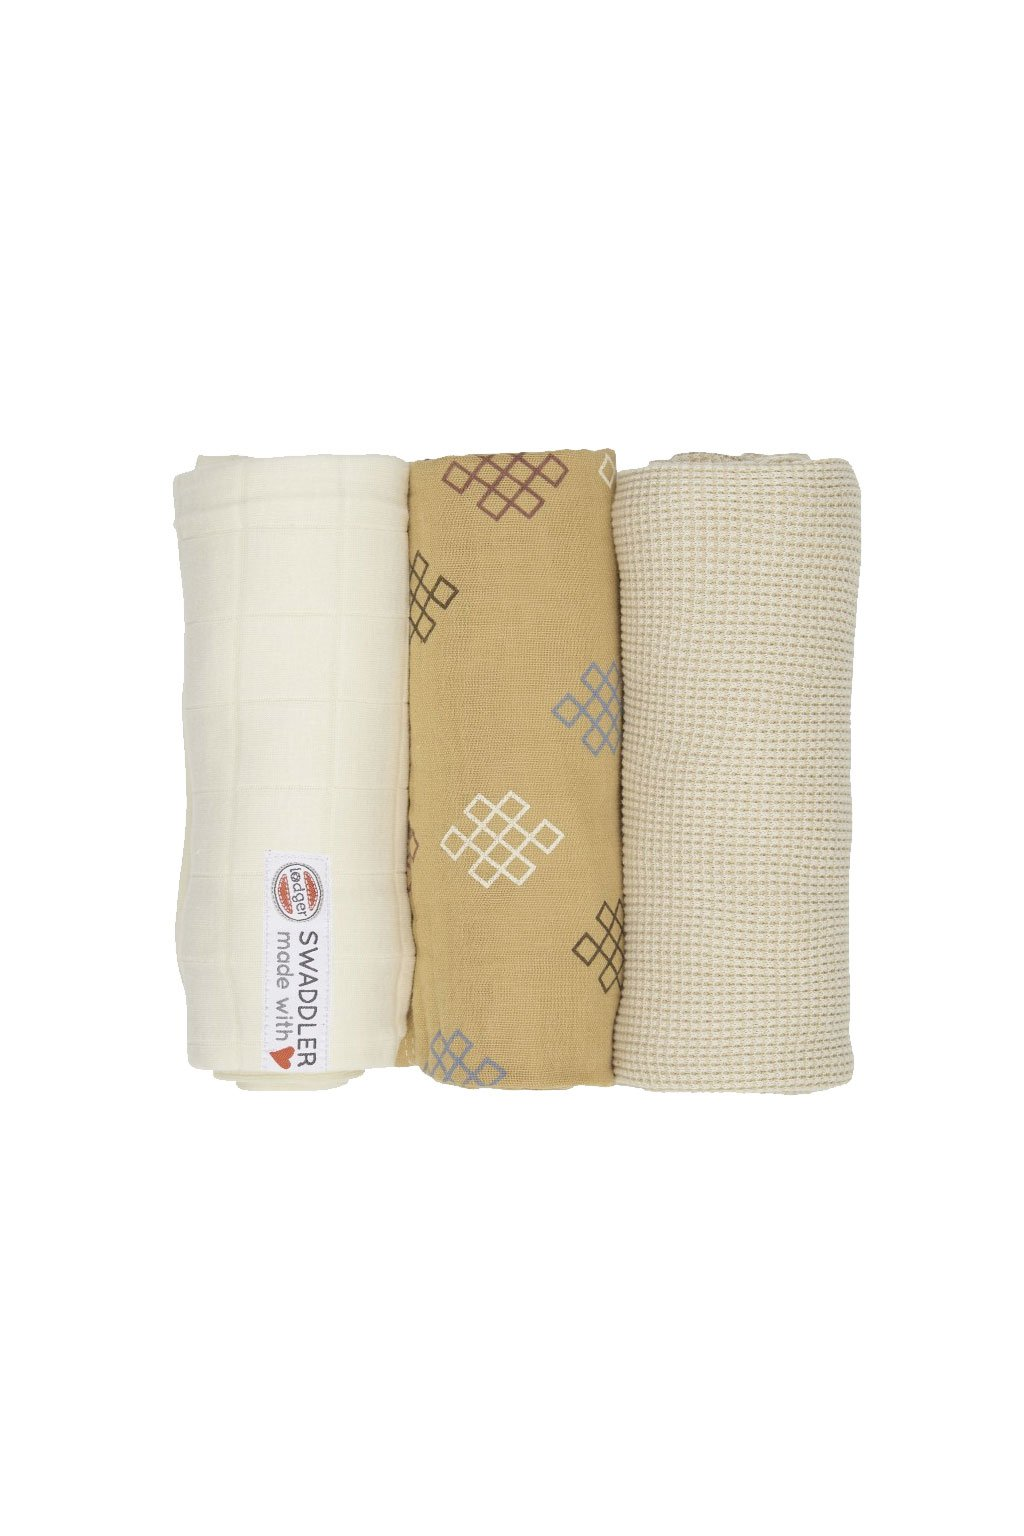 multifunkcna osuska swaddler empire knot 3 ks 70 x 70 cm ivory lodger